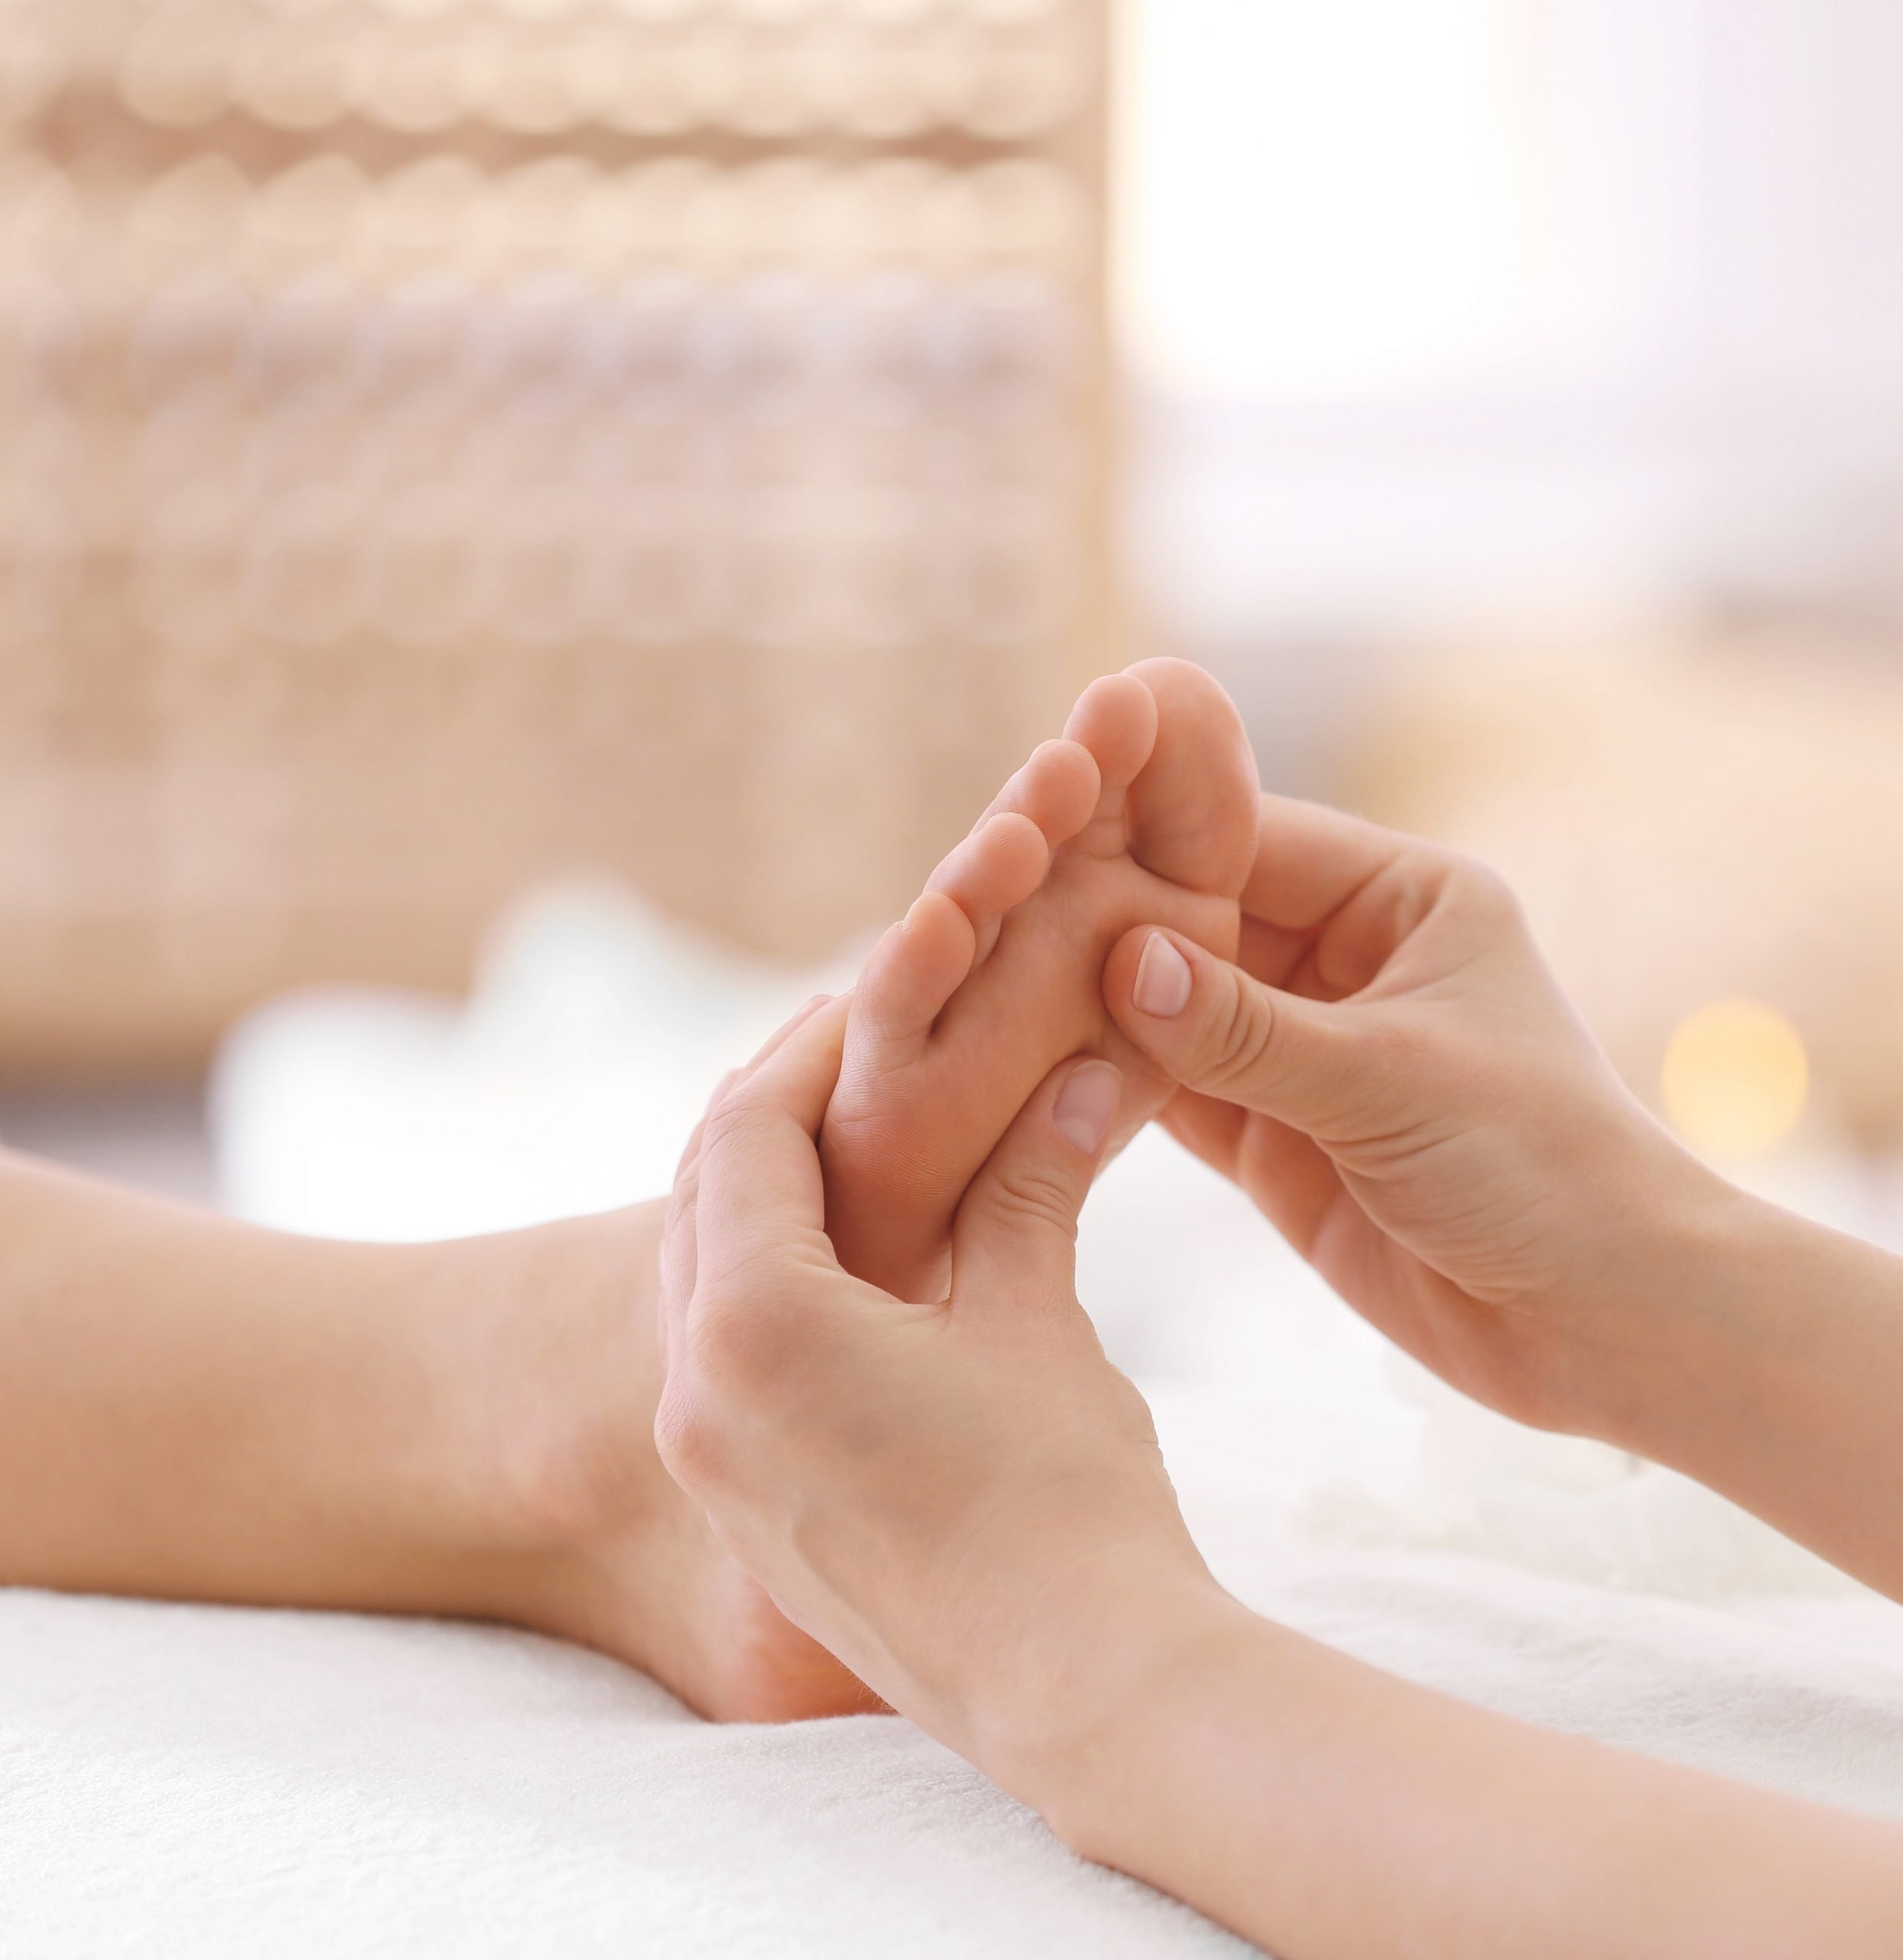 Reflexology uses gentle to moderate pressure on various pressure points in the hands, feet, and ears. We come to your home with massage table, linens, candles, music and oil.